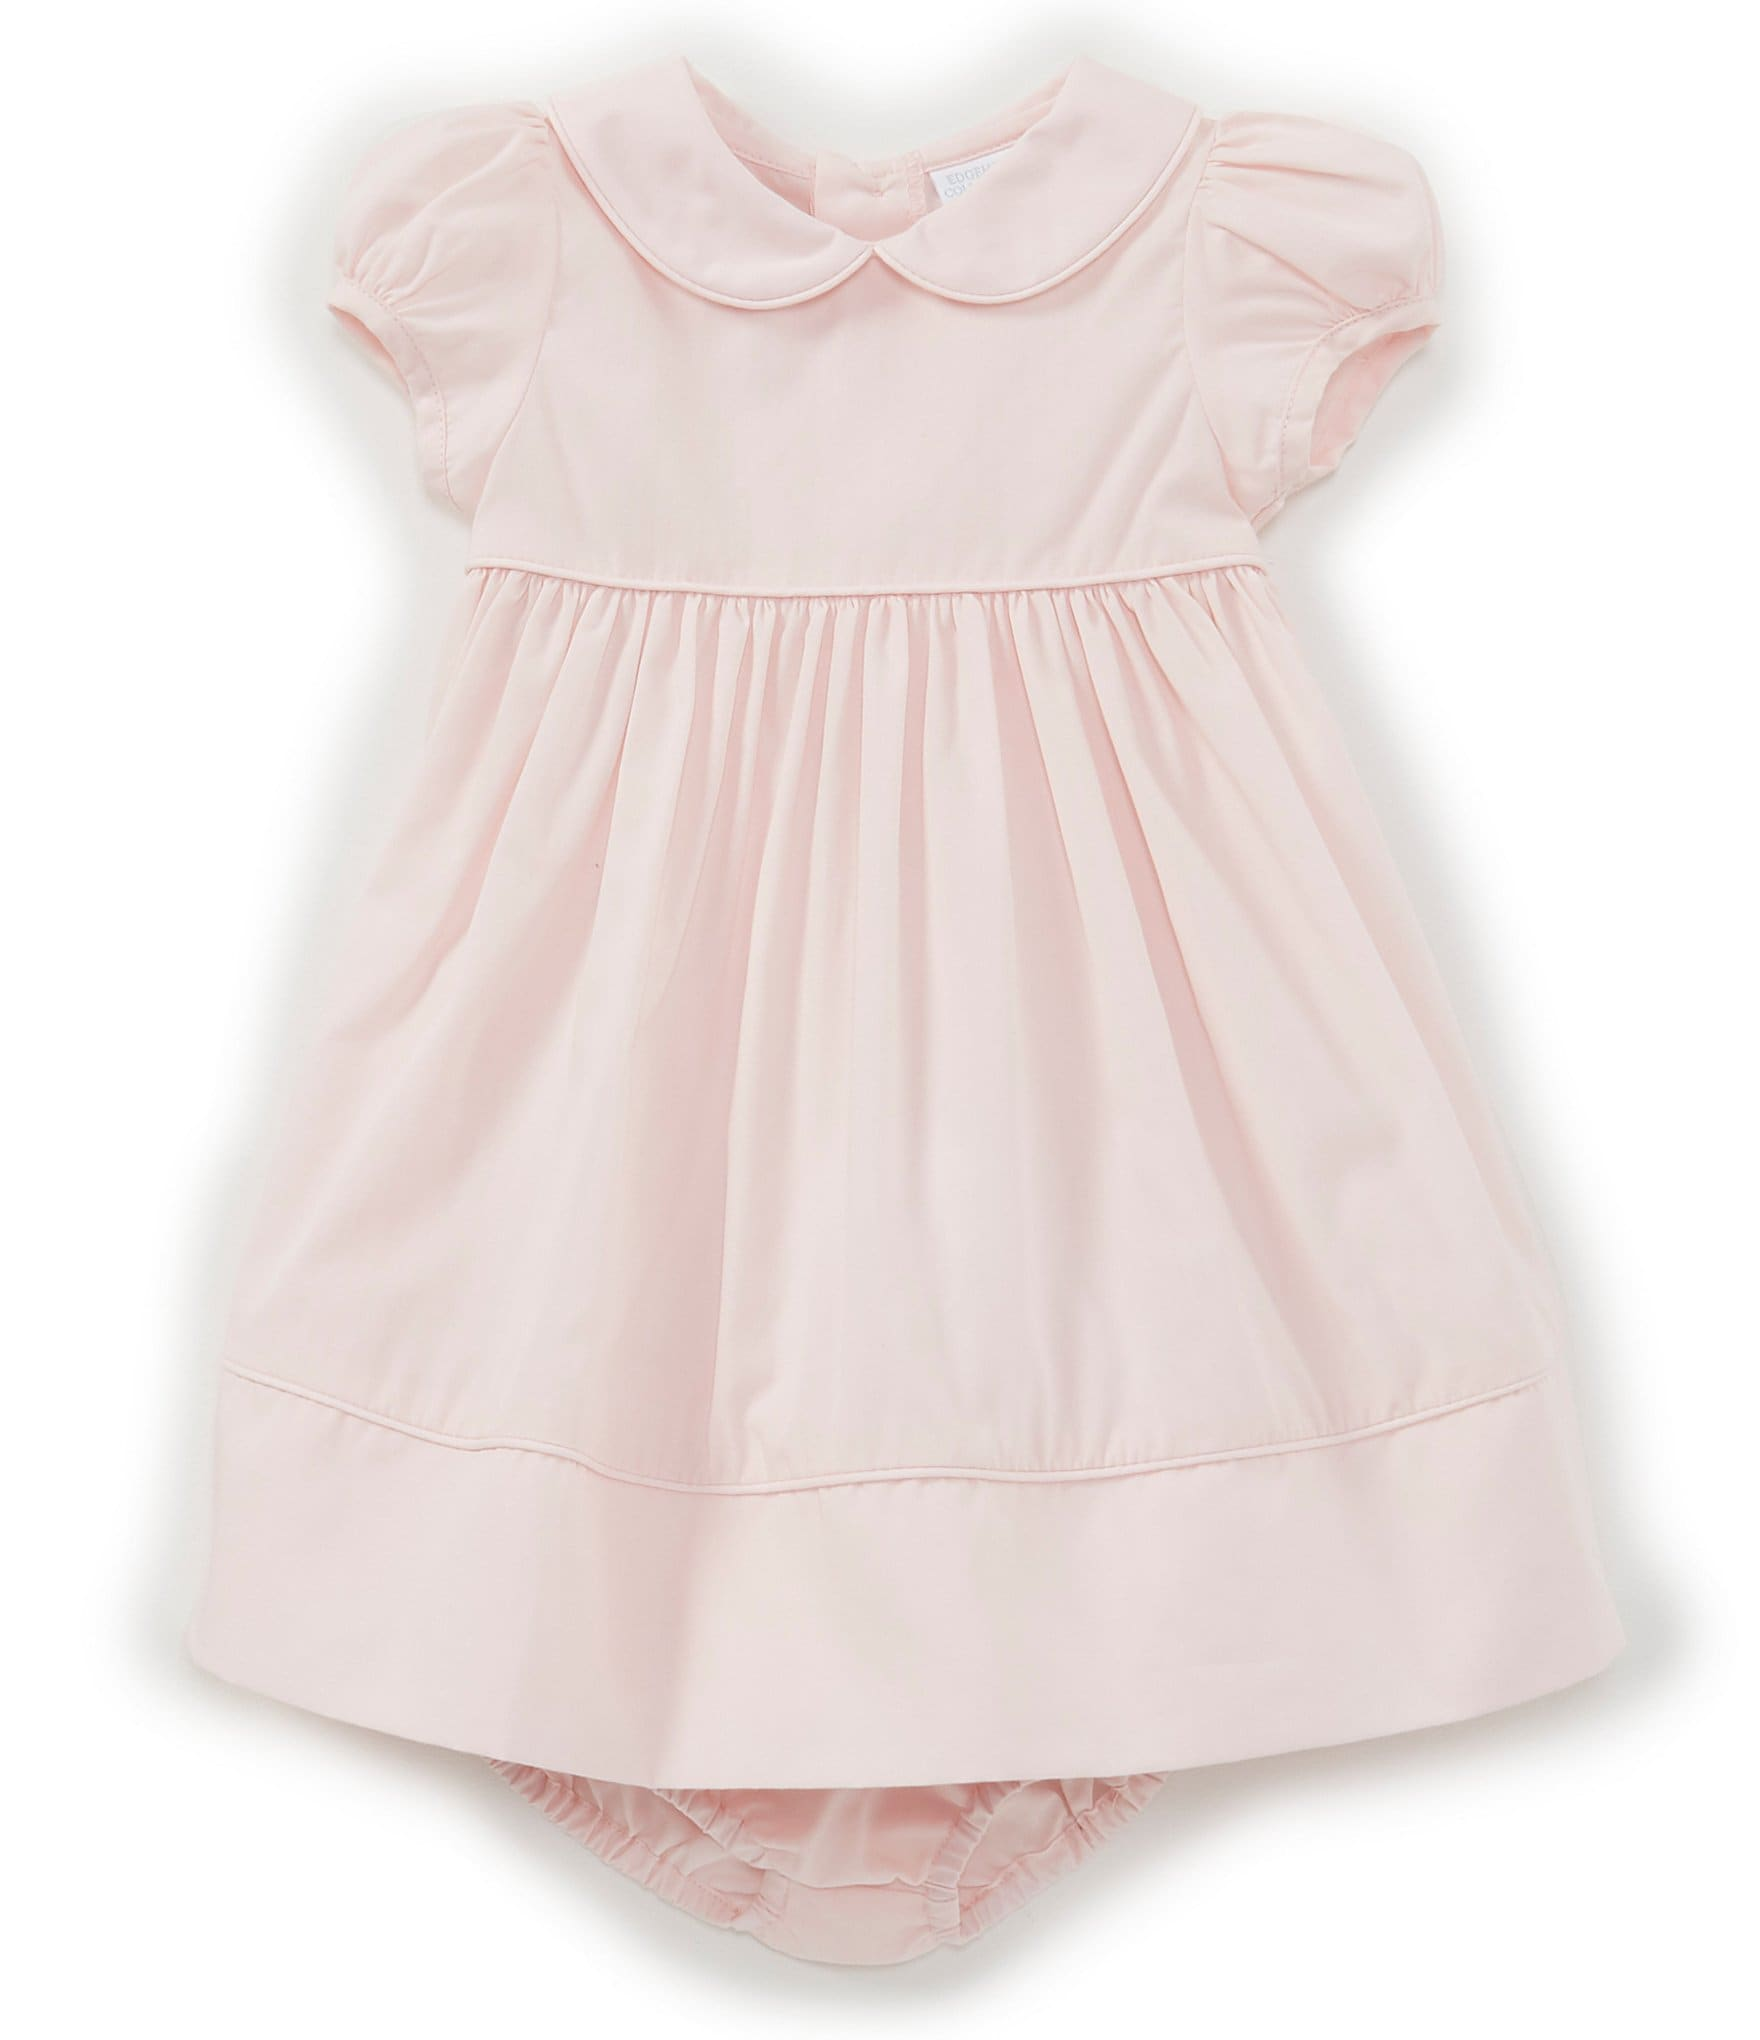 Edgehill Collection Baby Girls Newborn 24 Months Peter Pan